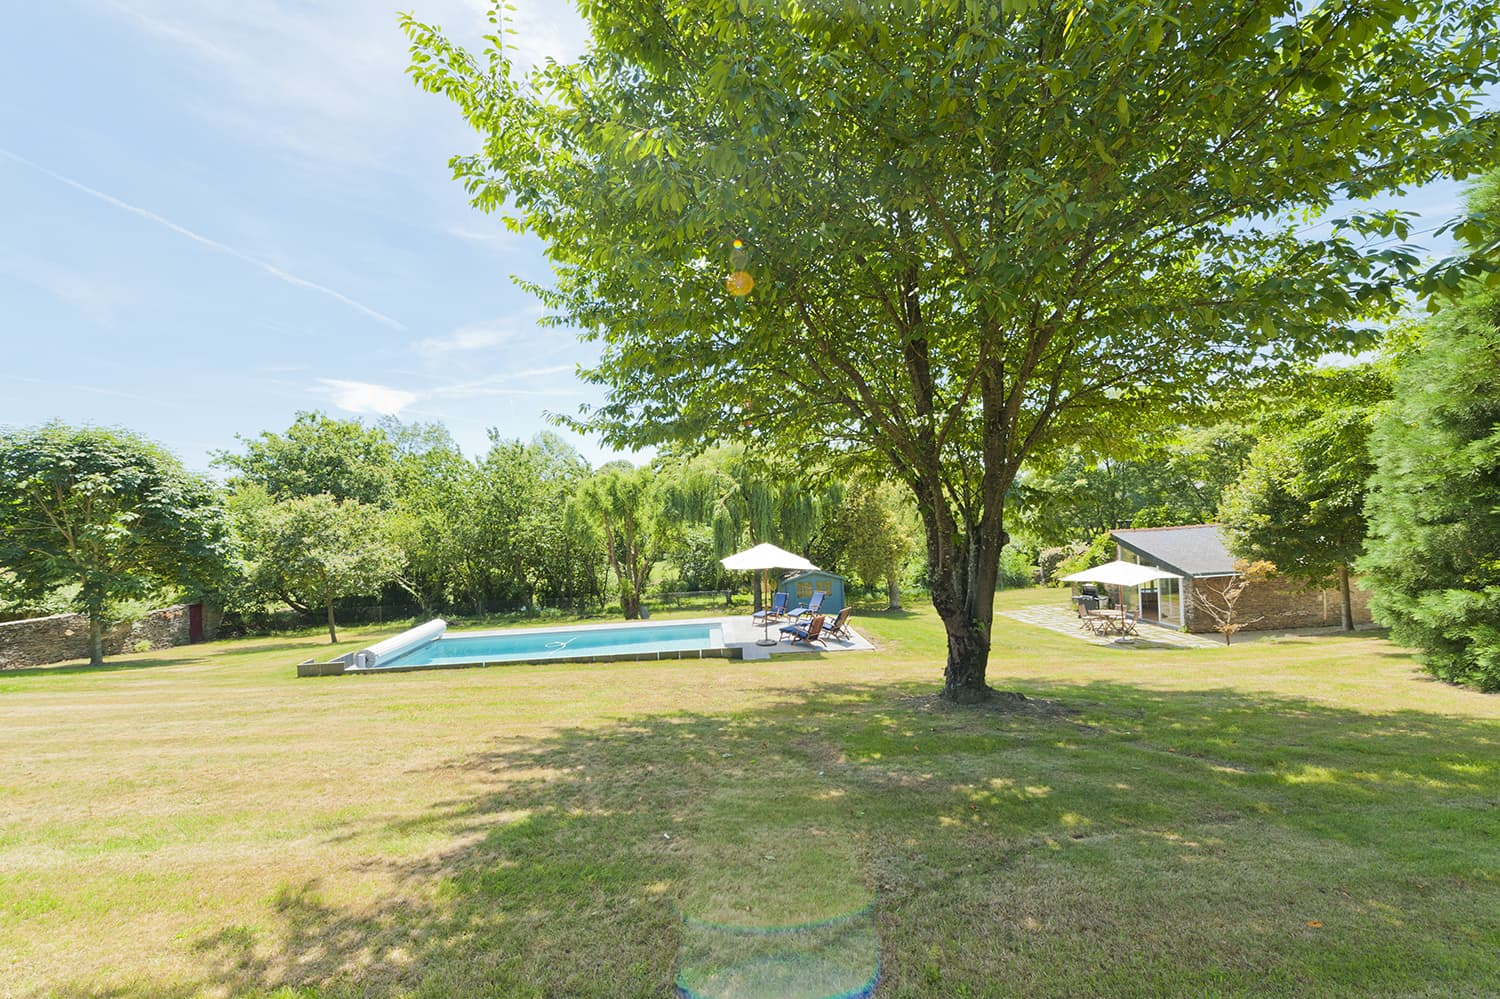 Loire rental house garden with private, heated pool